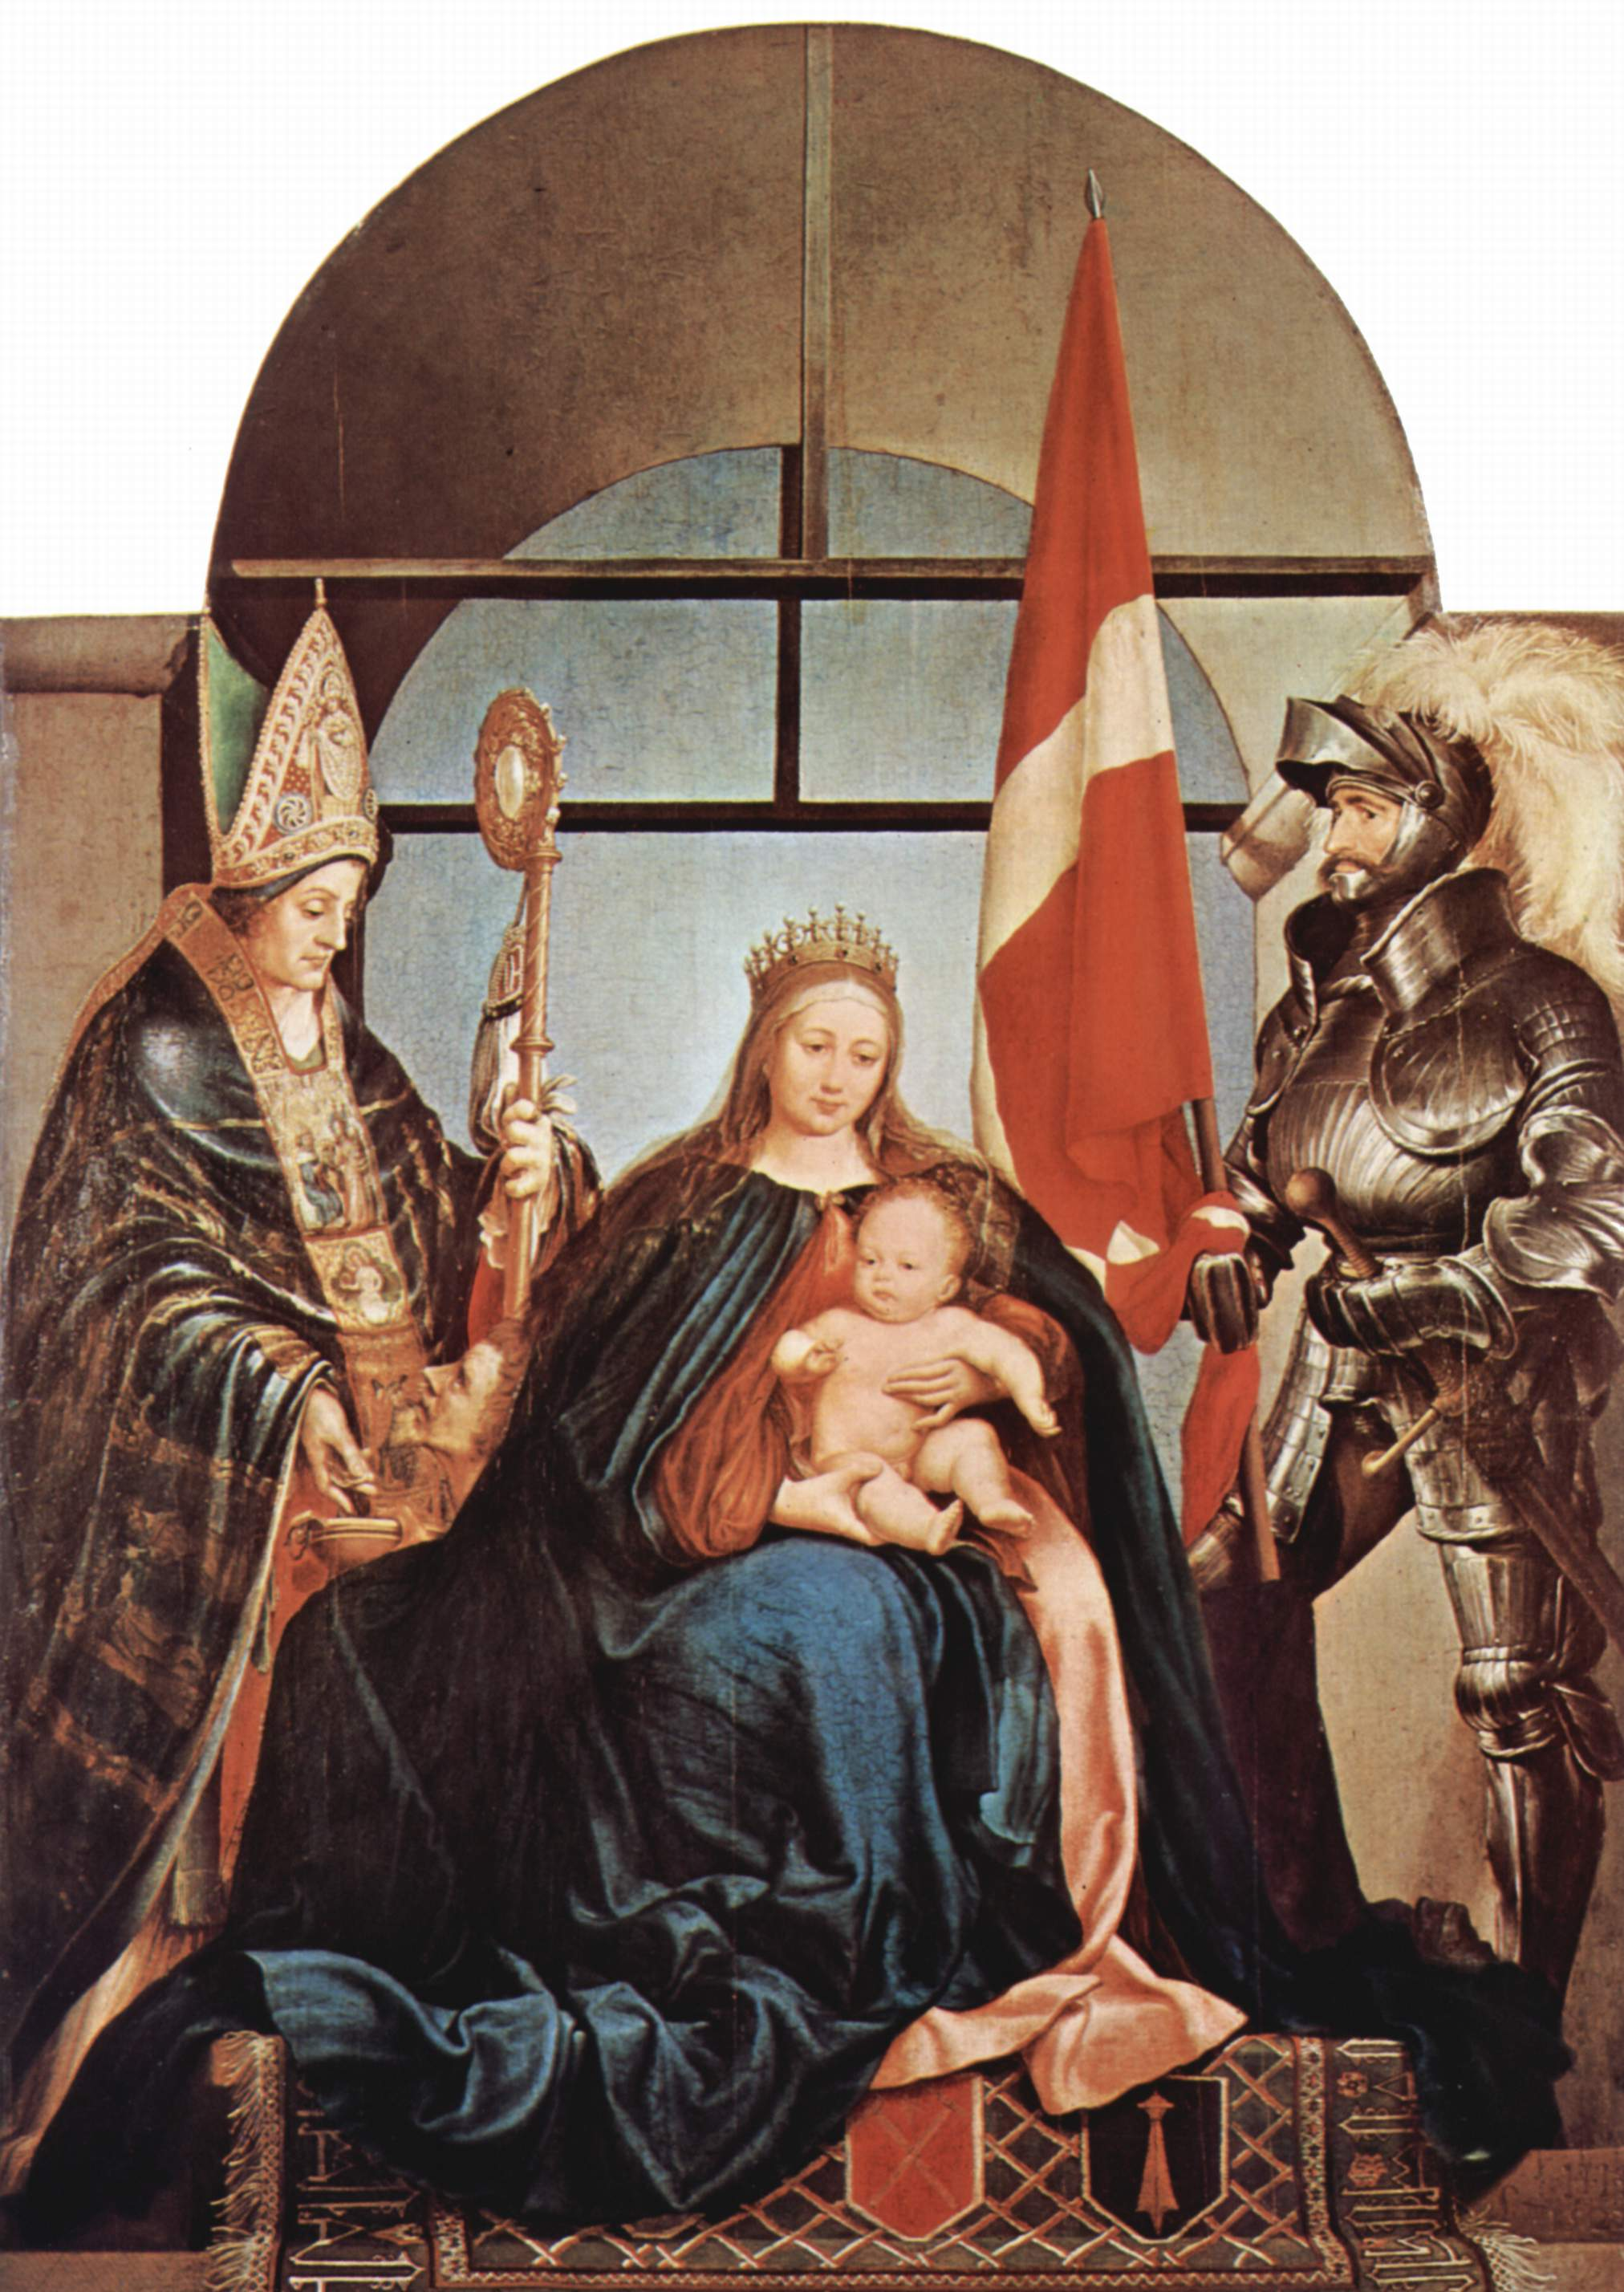 Madonna on a throne, St Nicholas (the guy with the cane) and St Ursus (the guy in armor), by Hans Holbein d. J., Gnu fD Licence